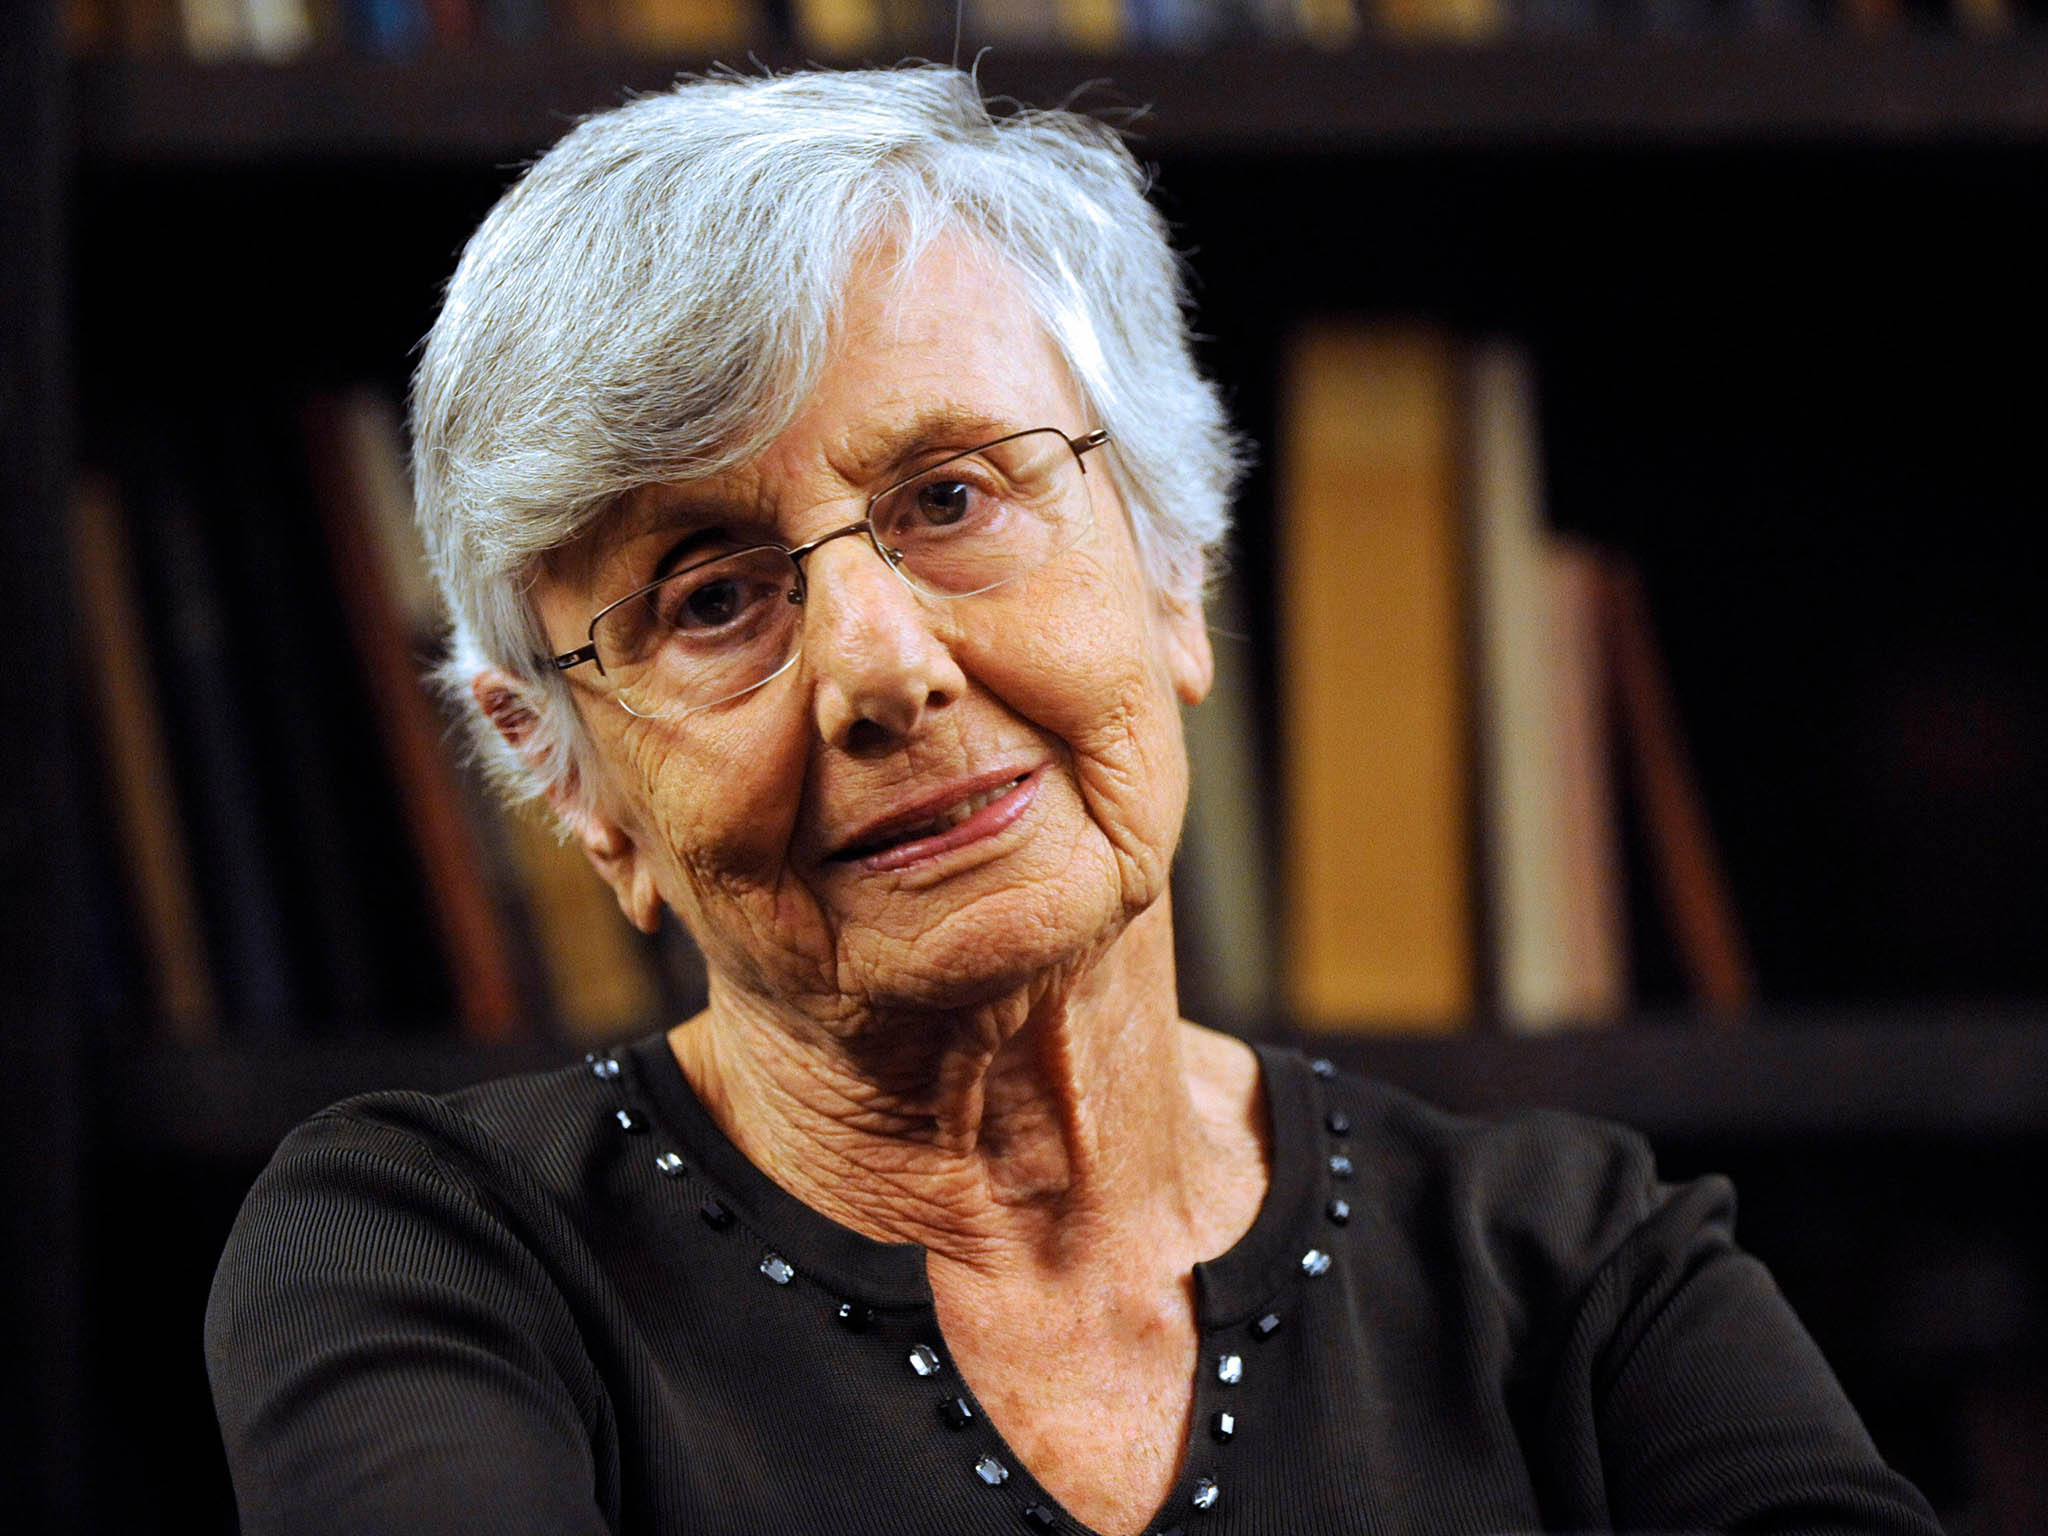 Ruth Bondy: Auschwitz survivor and journalist who brought Czech humour and literature to Israel